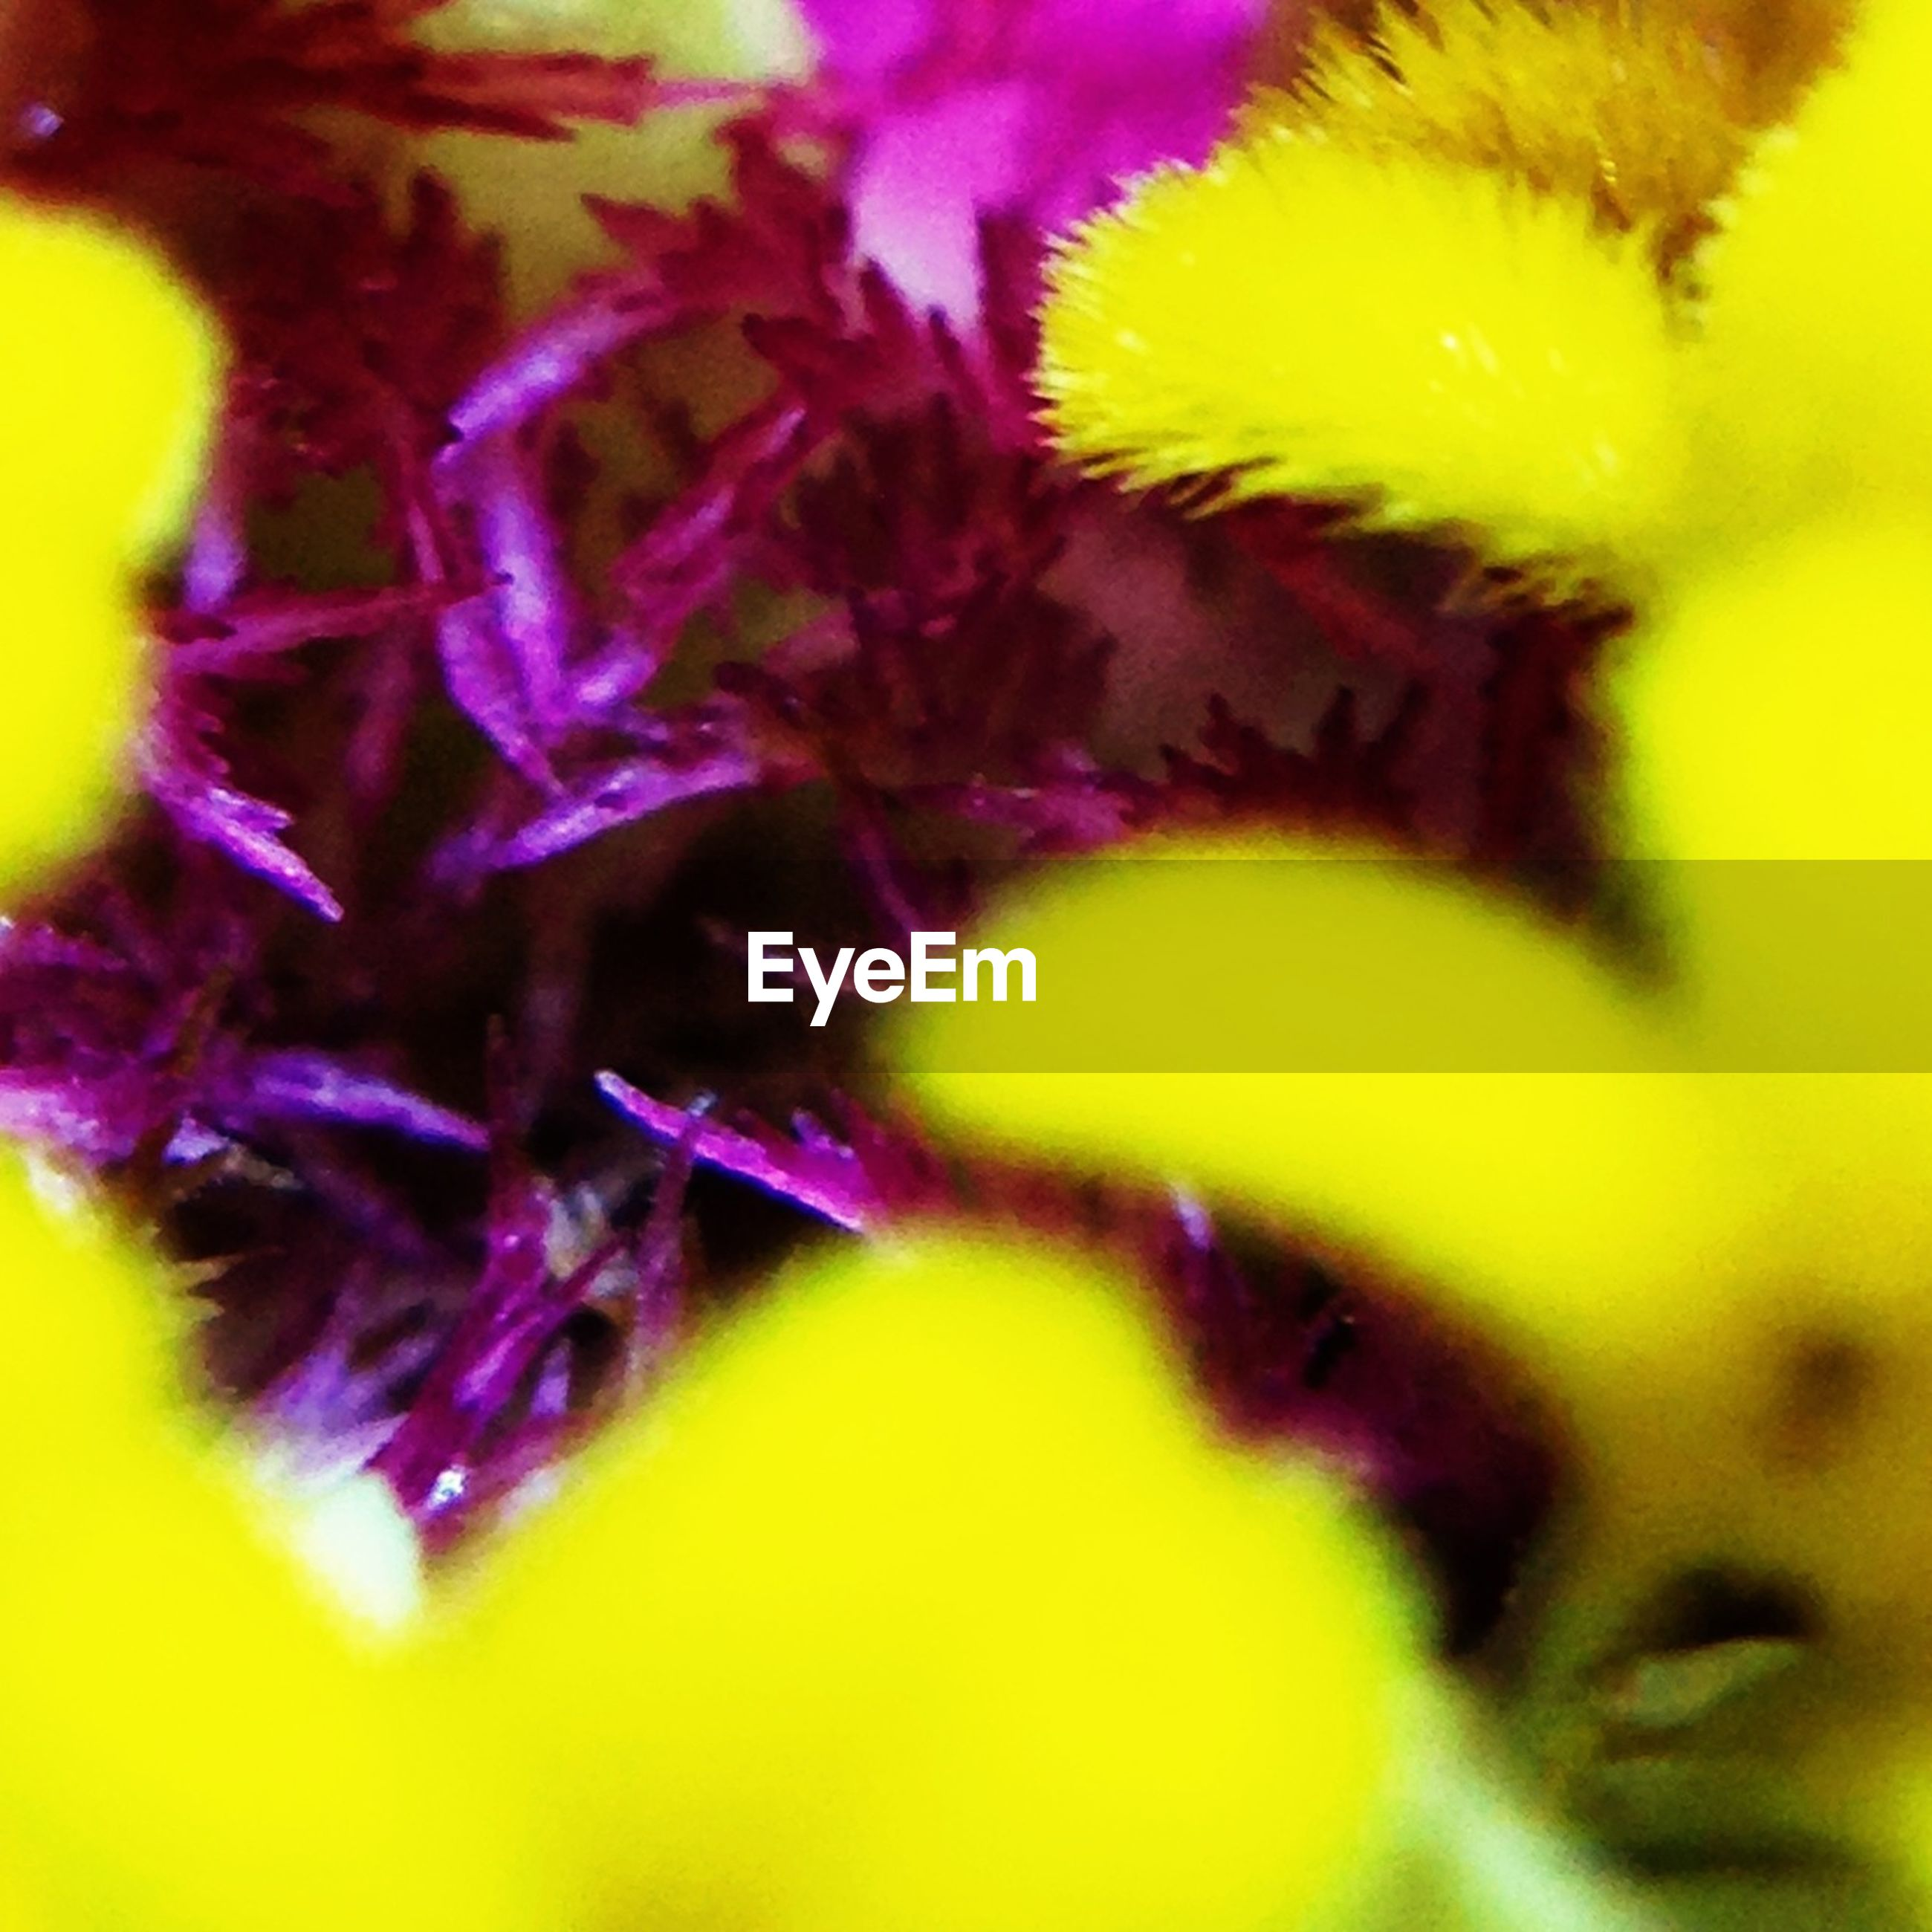 yellow, close-up, selective focus, flower, full frame, fragility, backgrounds, growth, extreme close-up, petal, nature, vibrant color, freshness, macro, no people, focus on foreground, beauty in nature, detail, plant, flower head